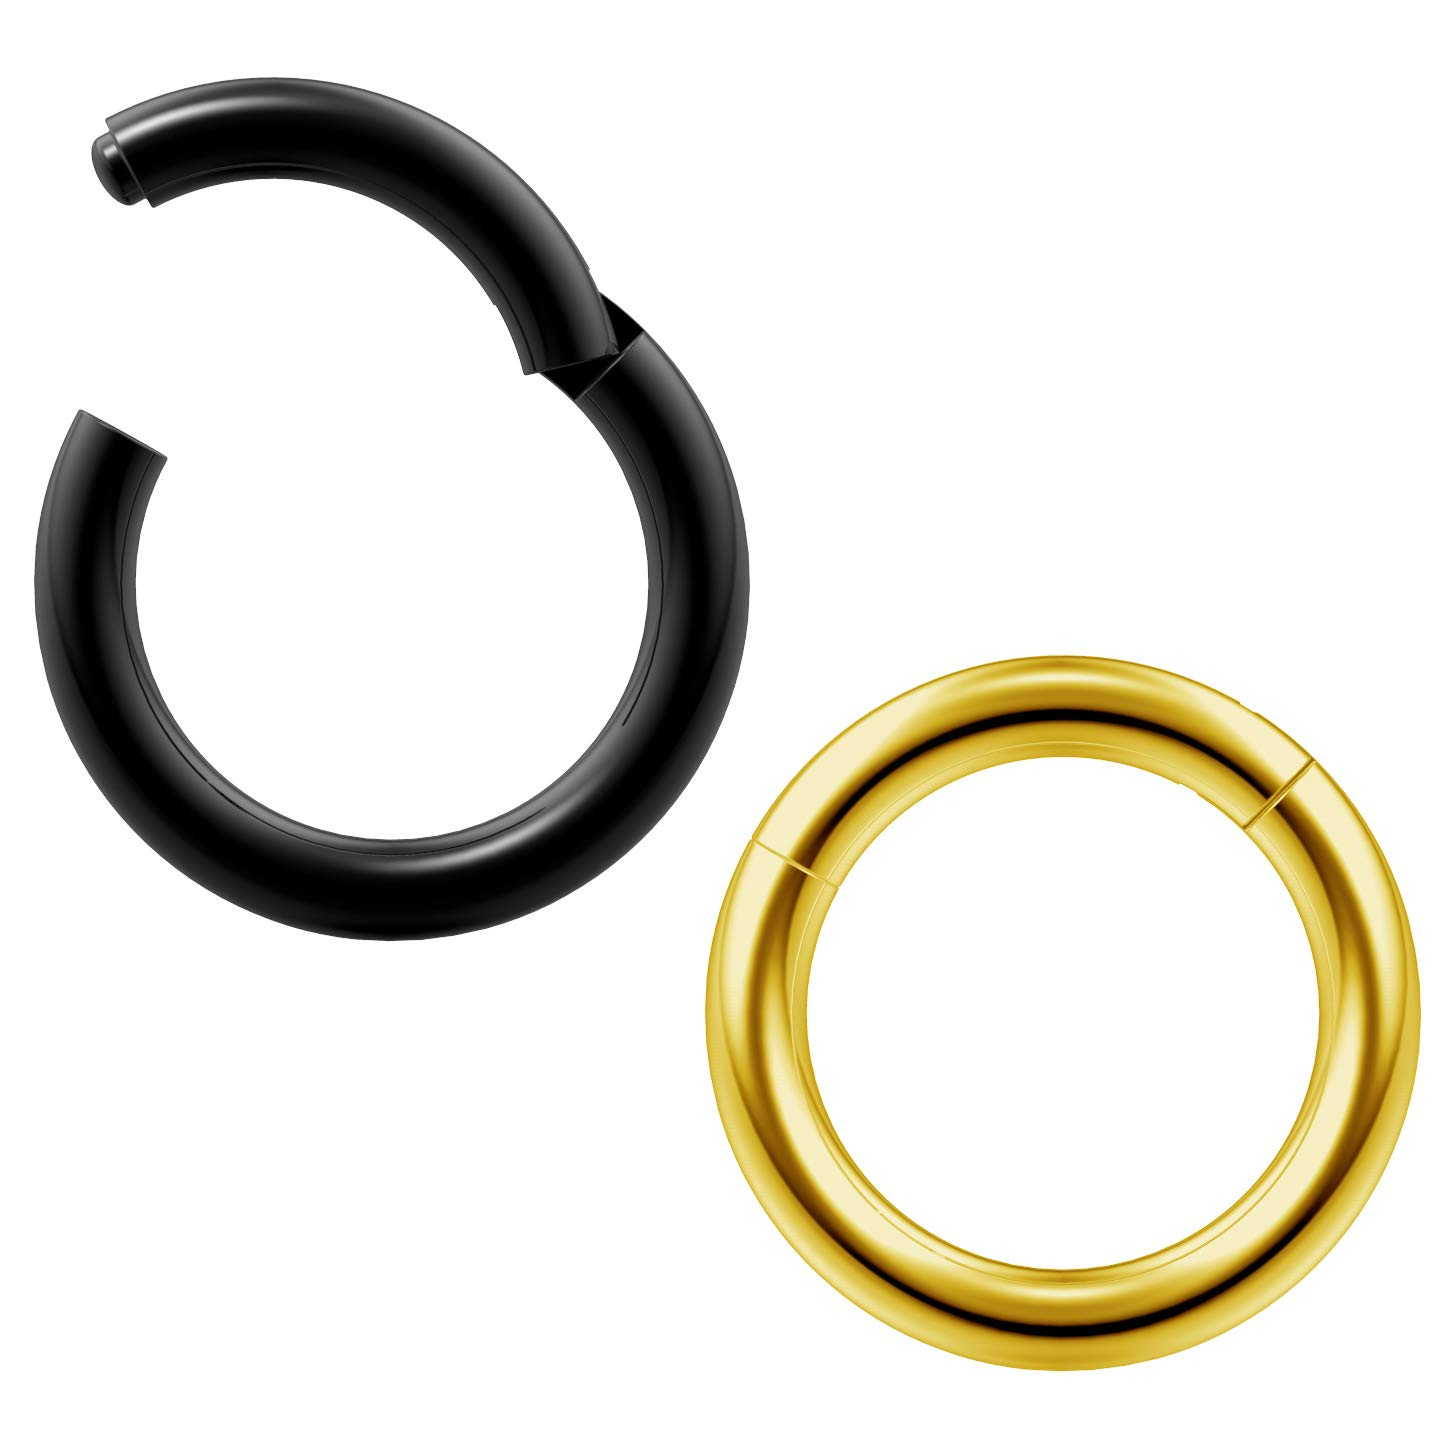 2pc 14g Clicker Nose Rings Hoop Septum Ring Ceptum Clickers Conch Piercing Jewelry 5//16 8mm